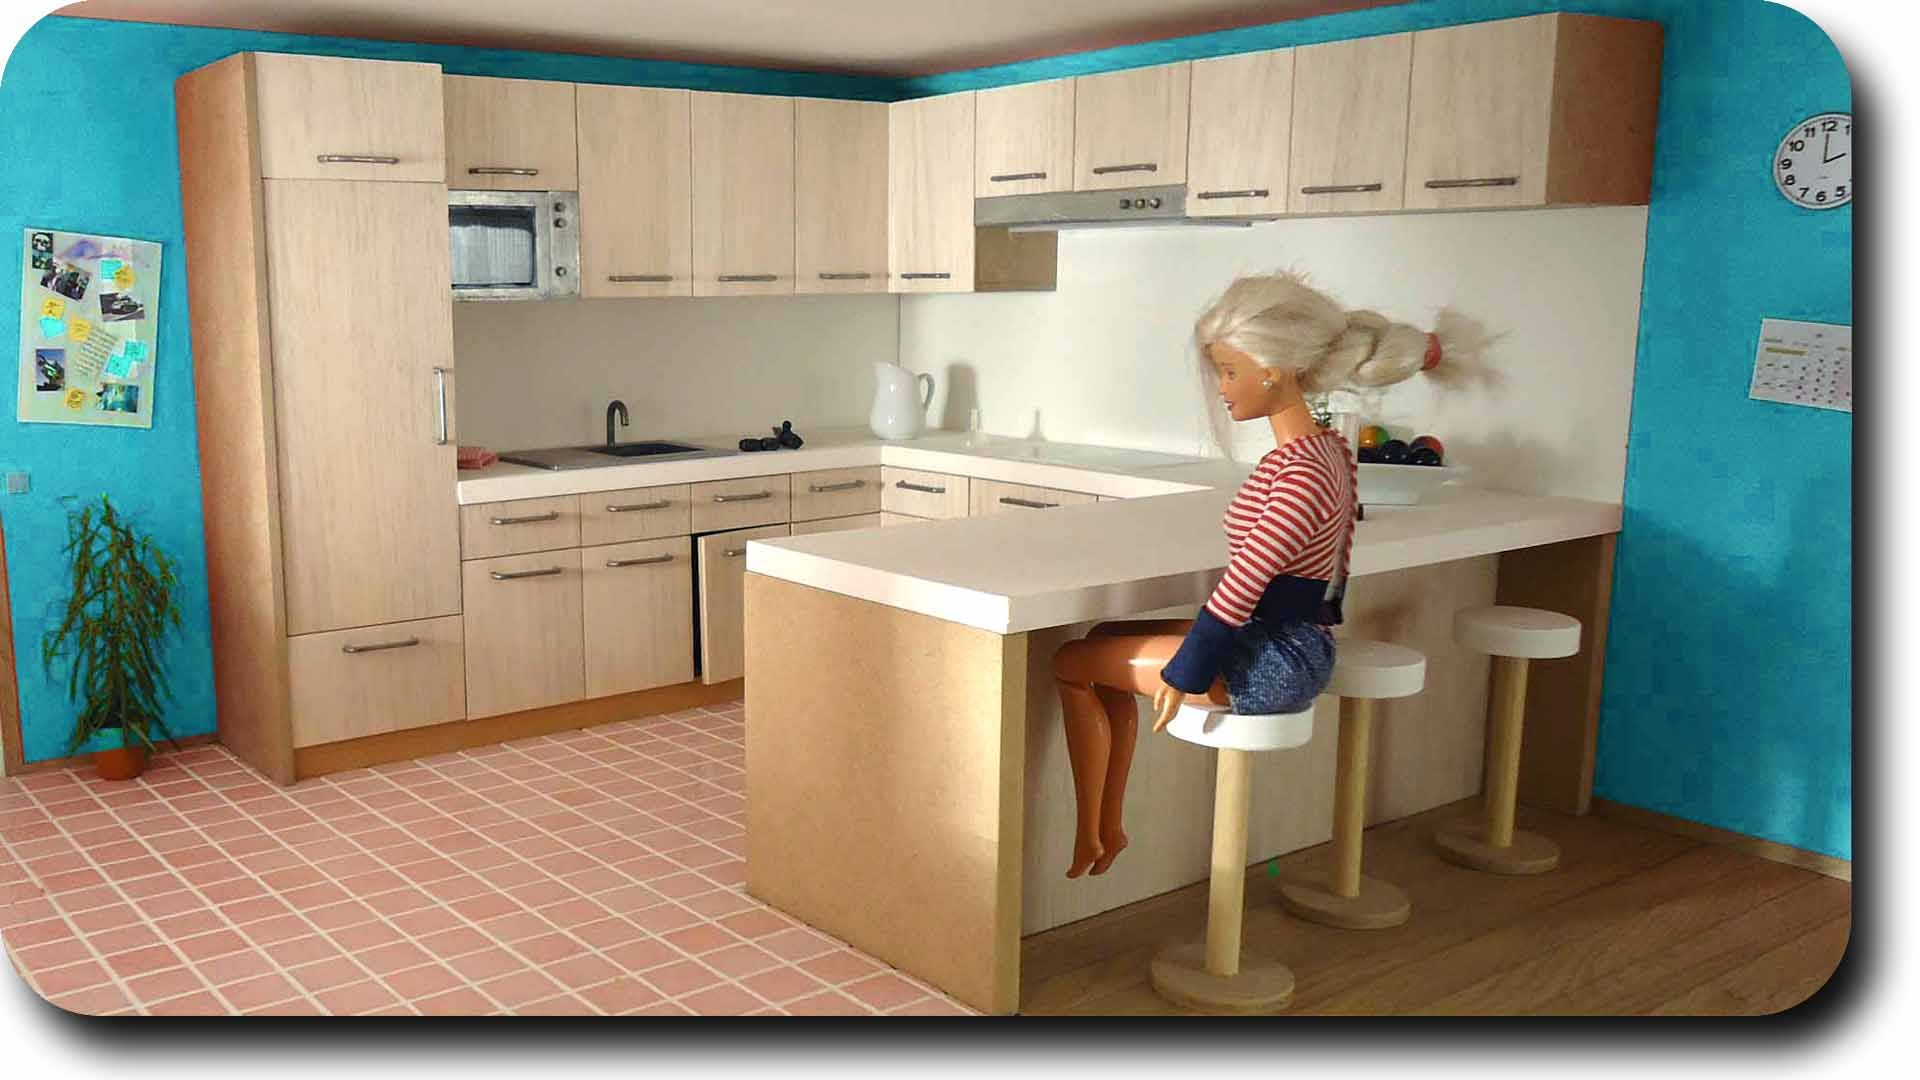 Casa barbie for Decoracion de casas hechas a mano